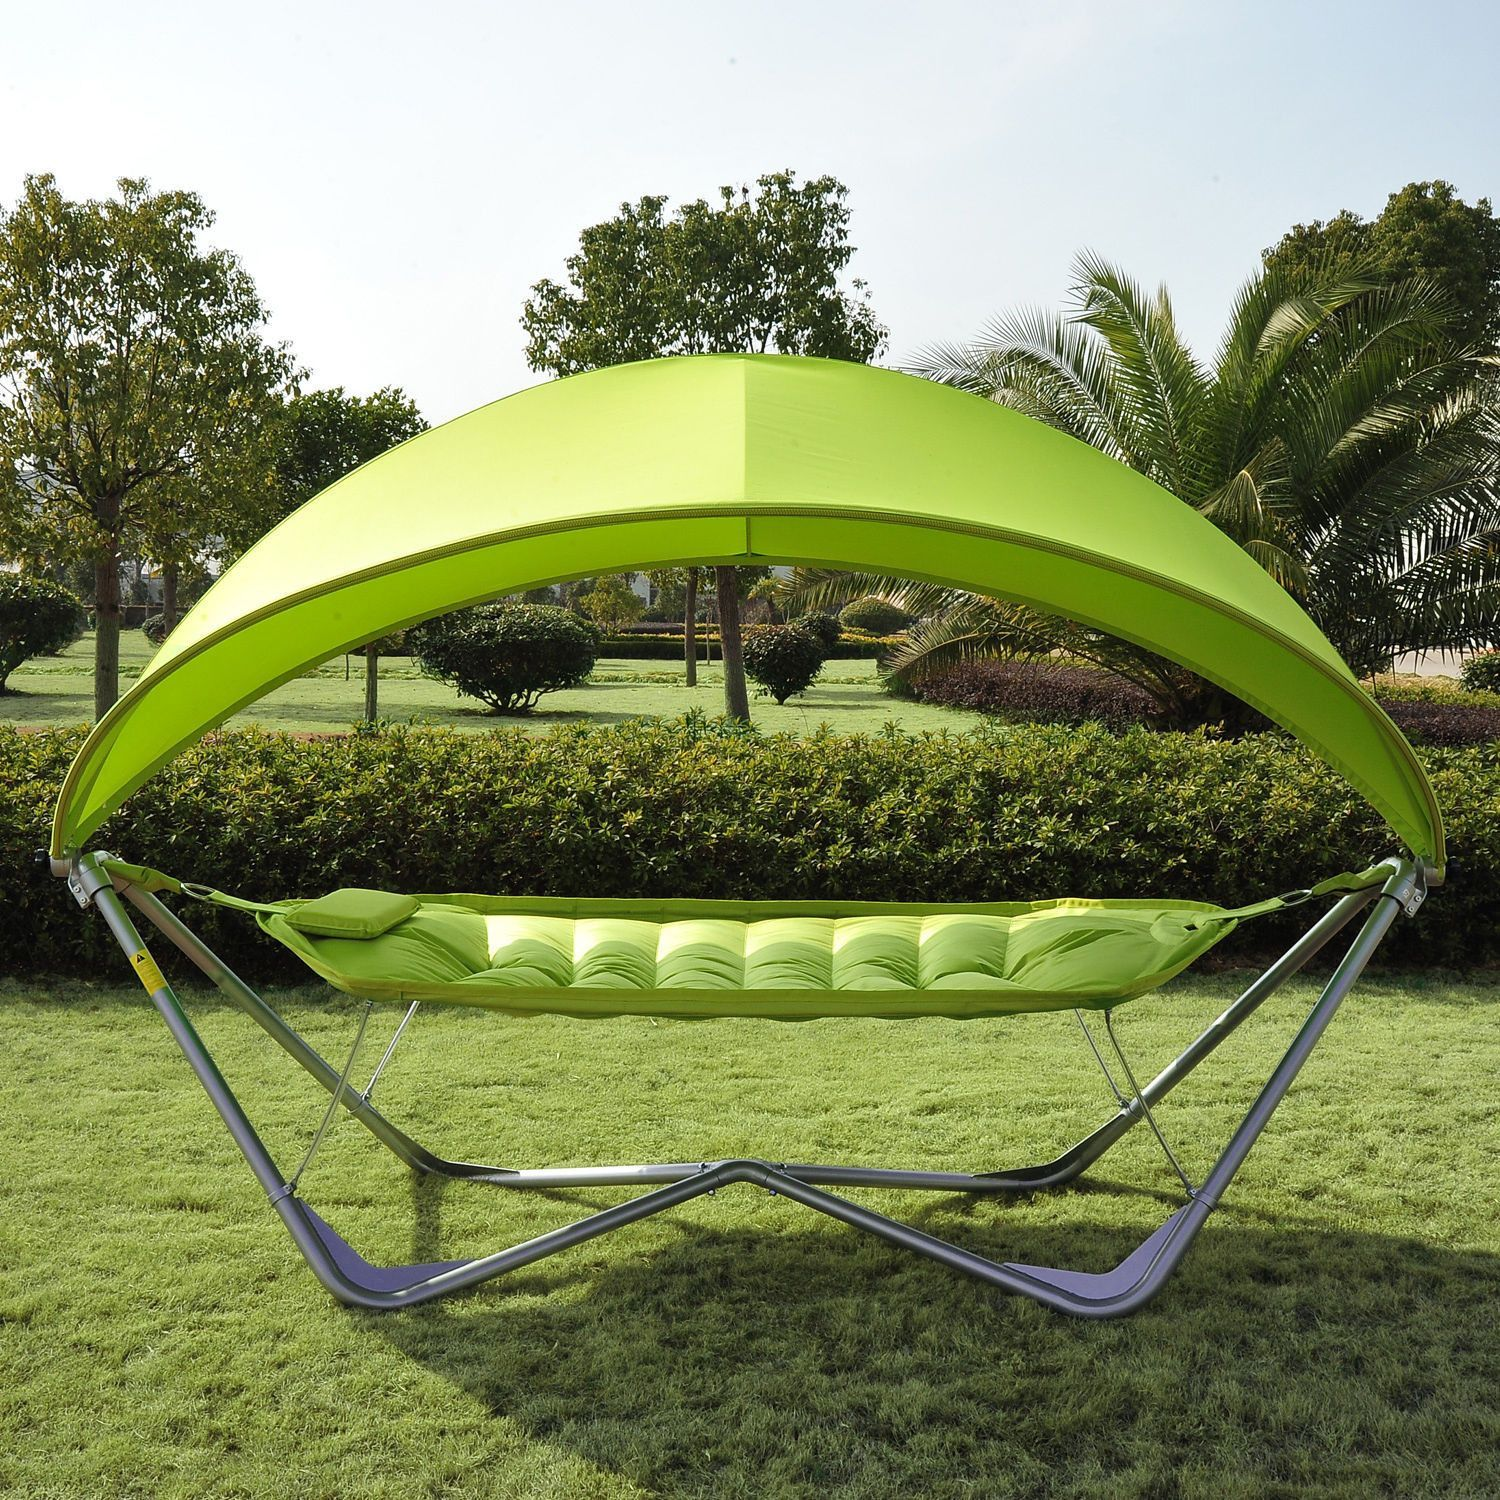 Outdoor hammock bed - Outdoor Single Hammock Canopy Stand Patio Bed Portable Swing Camping Yard Poolside Lemon Green